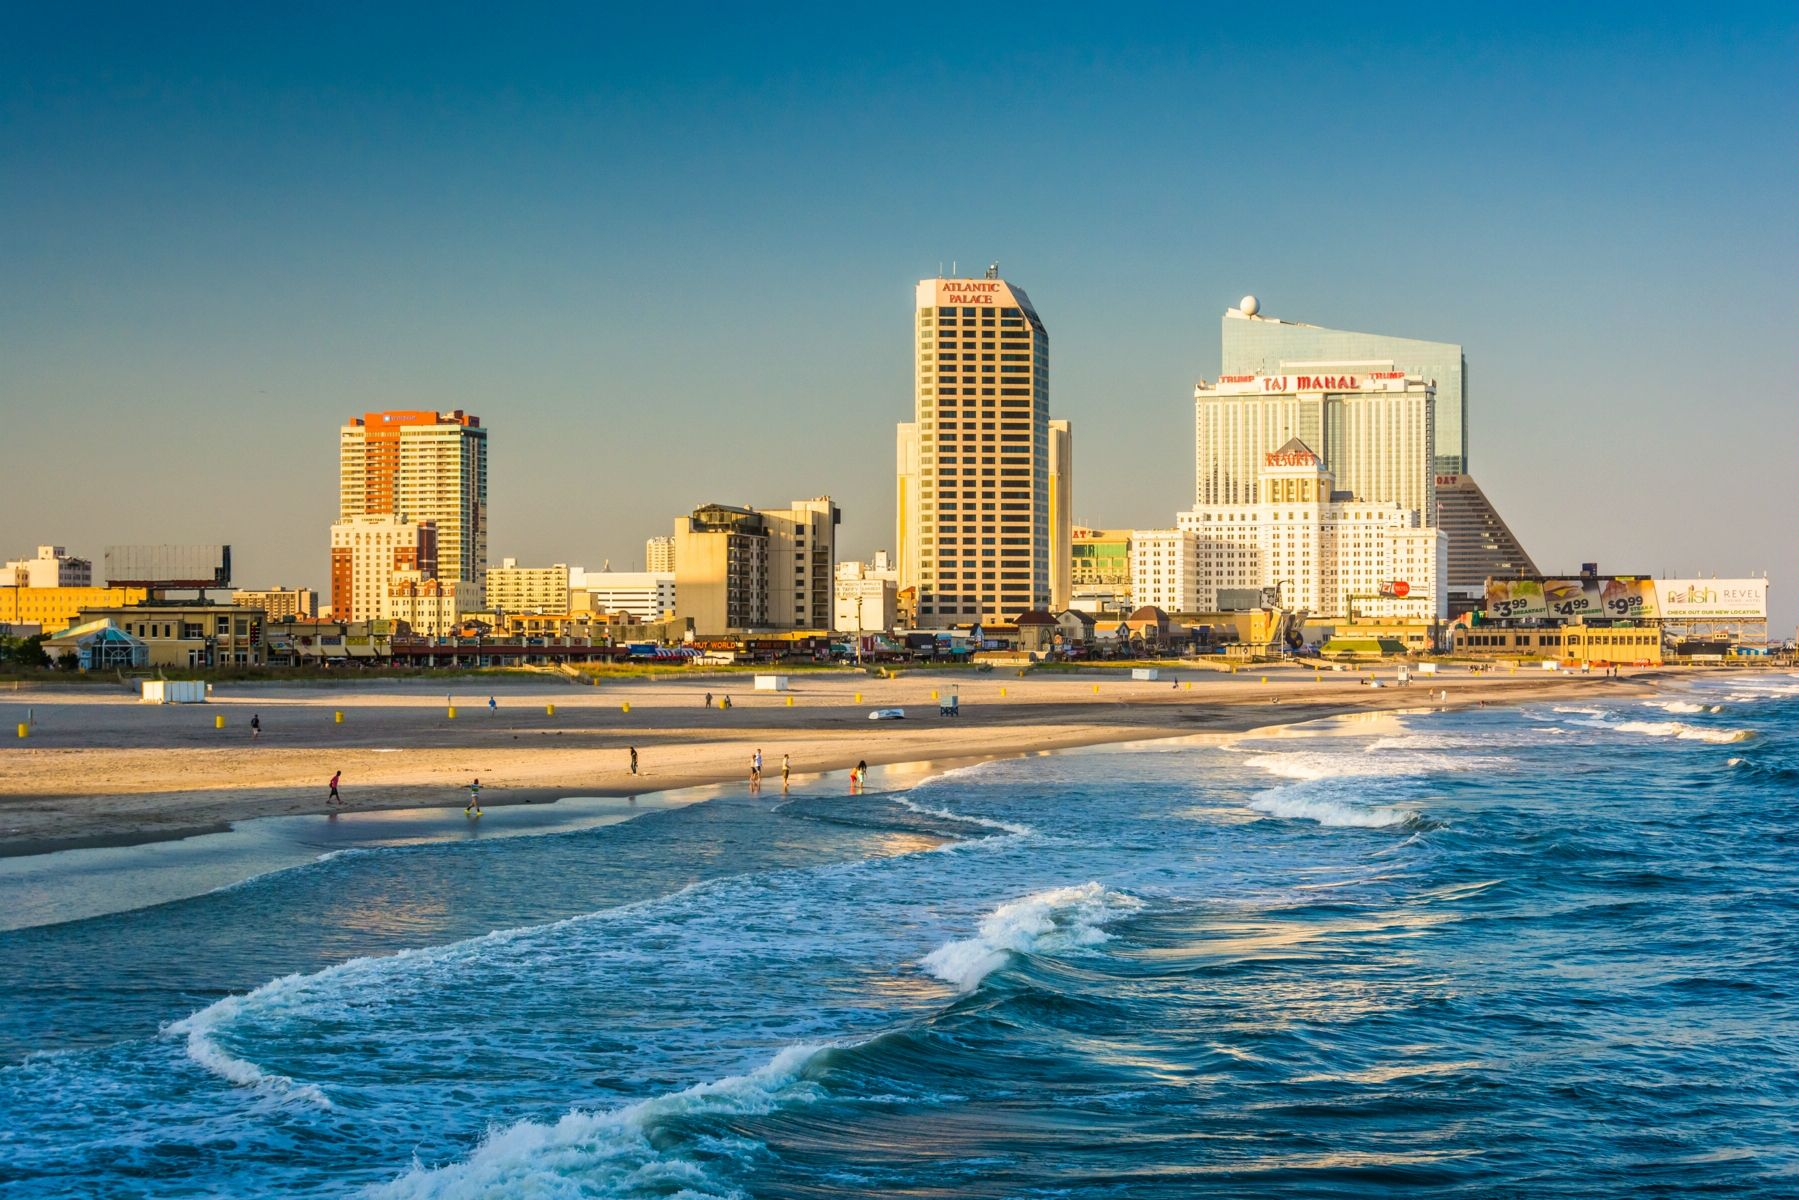 an introduction to the great transformation of atlantic city from a casino city to a resort destinat